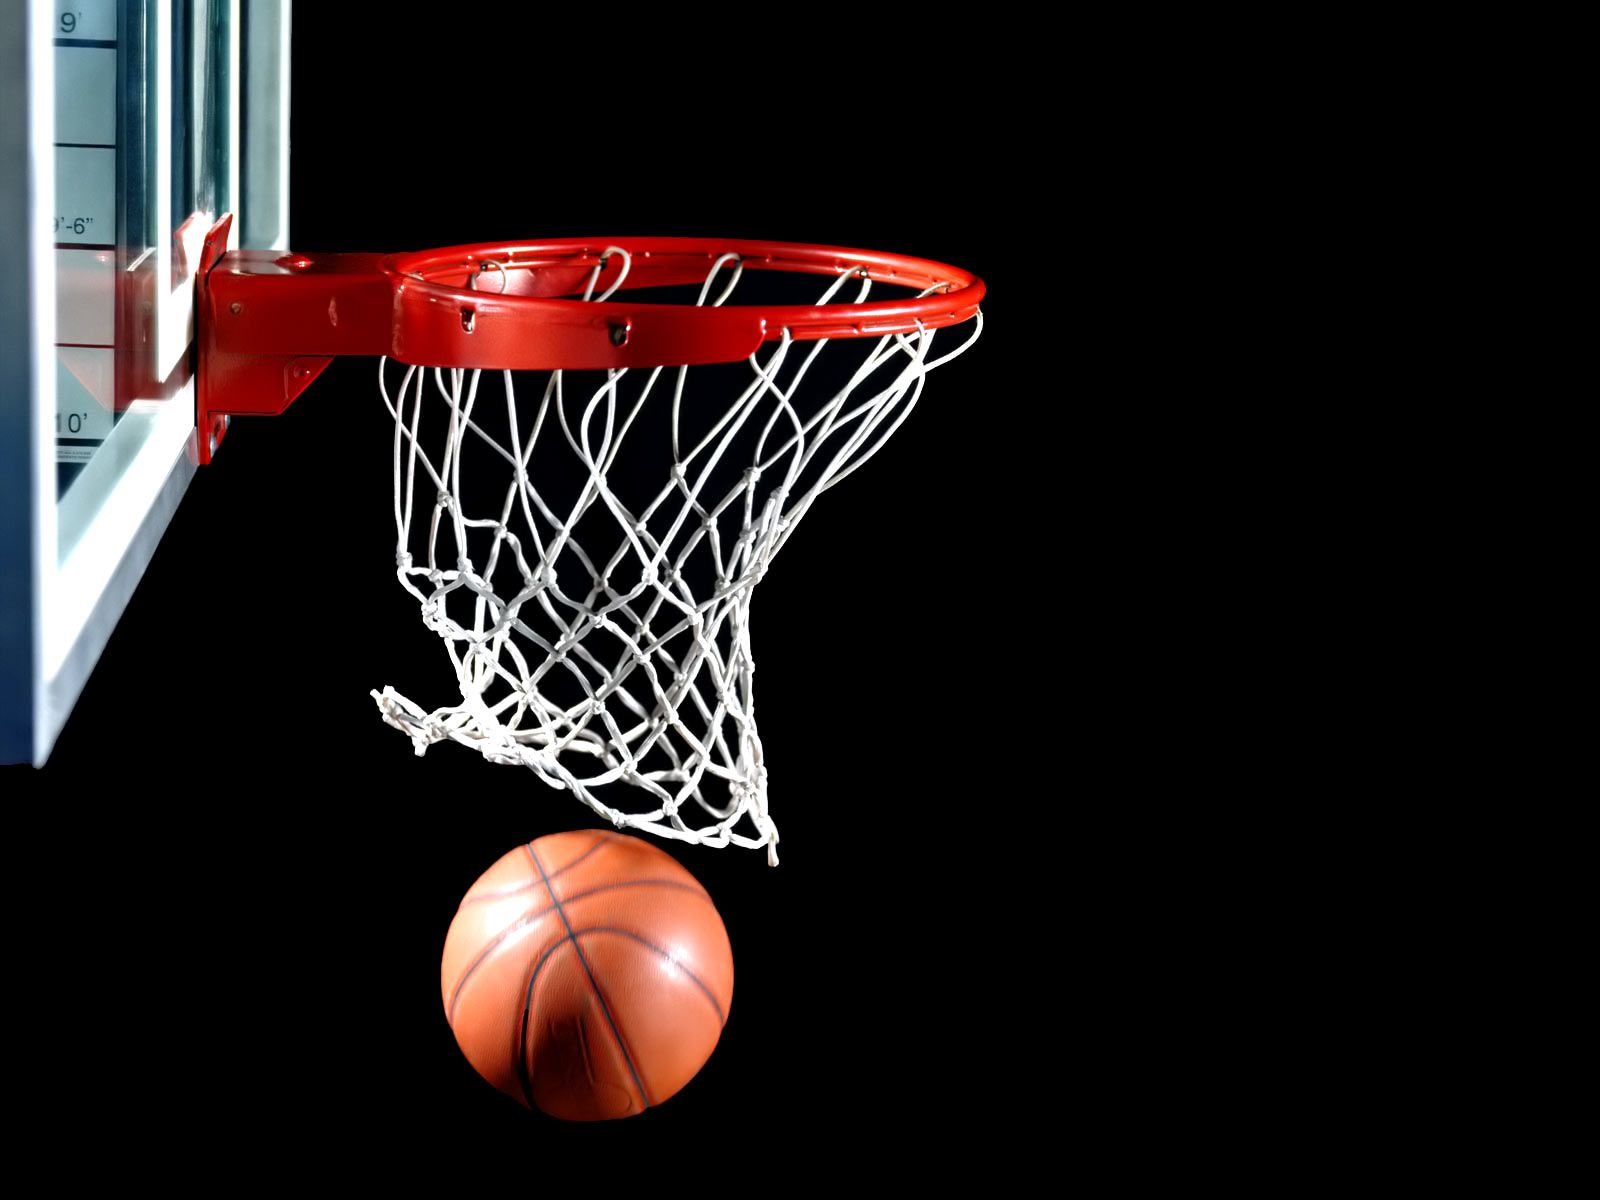 Awesome Basketball In High Resolution Basketball Skills Basketball Stats Basketball Championship